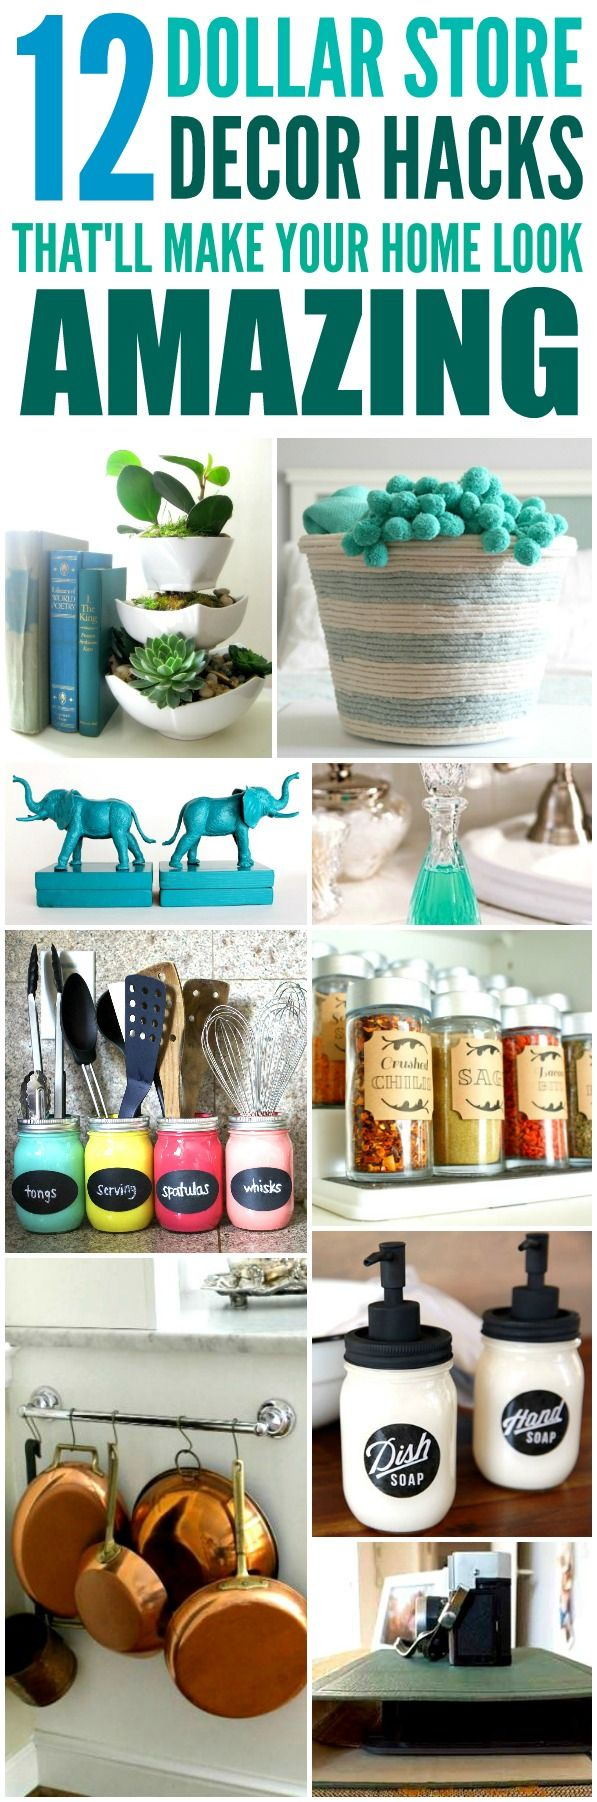 These 12 Dollar Store Decor Hacks Are THE BEST! Iu0027m So Glad I Found These  AMAZING Home Decor Ideas And Tips! Now I Have Great Ways To Decorate My Home  A A ...